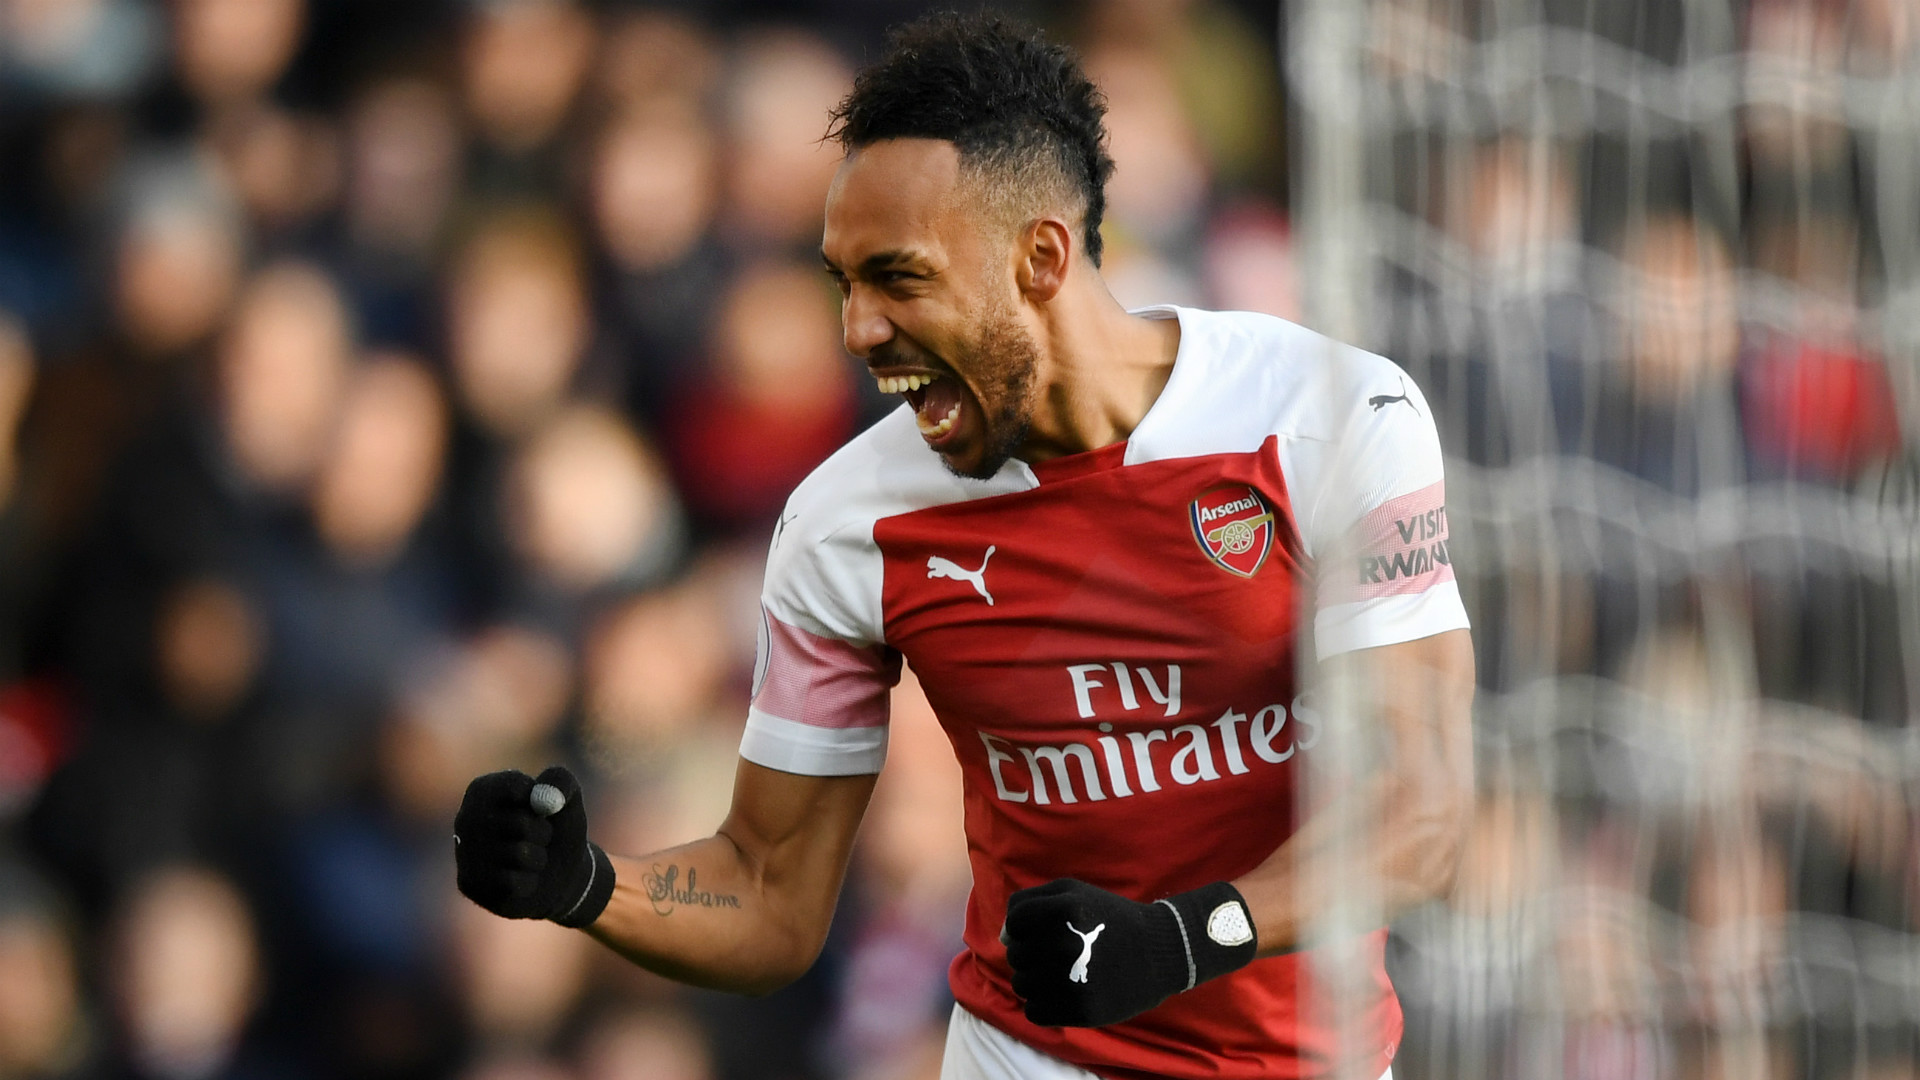 Arsenal striker Aubameyang: I was s*** against Liverpool!